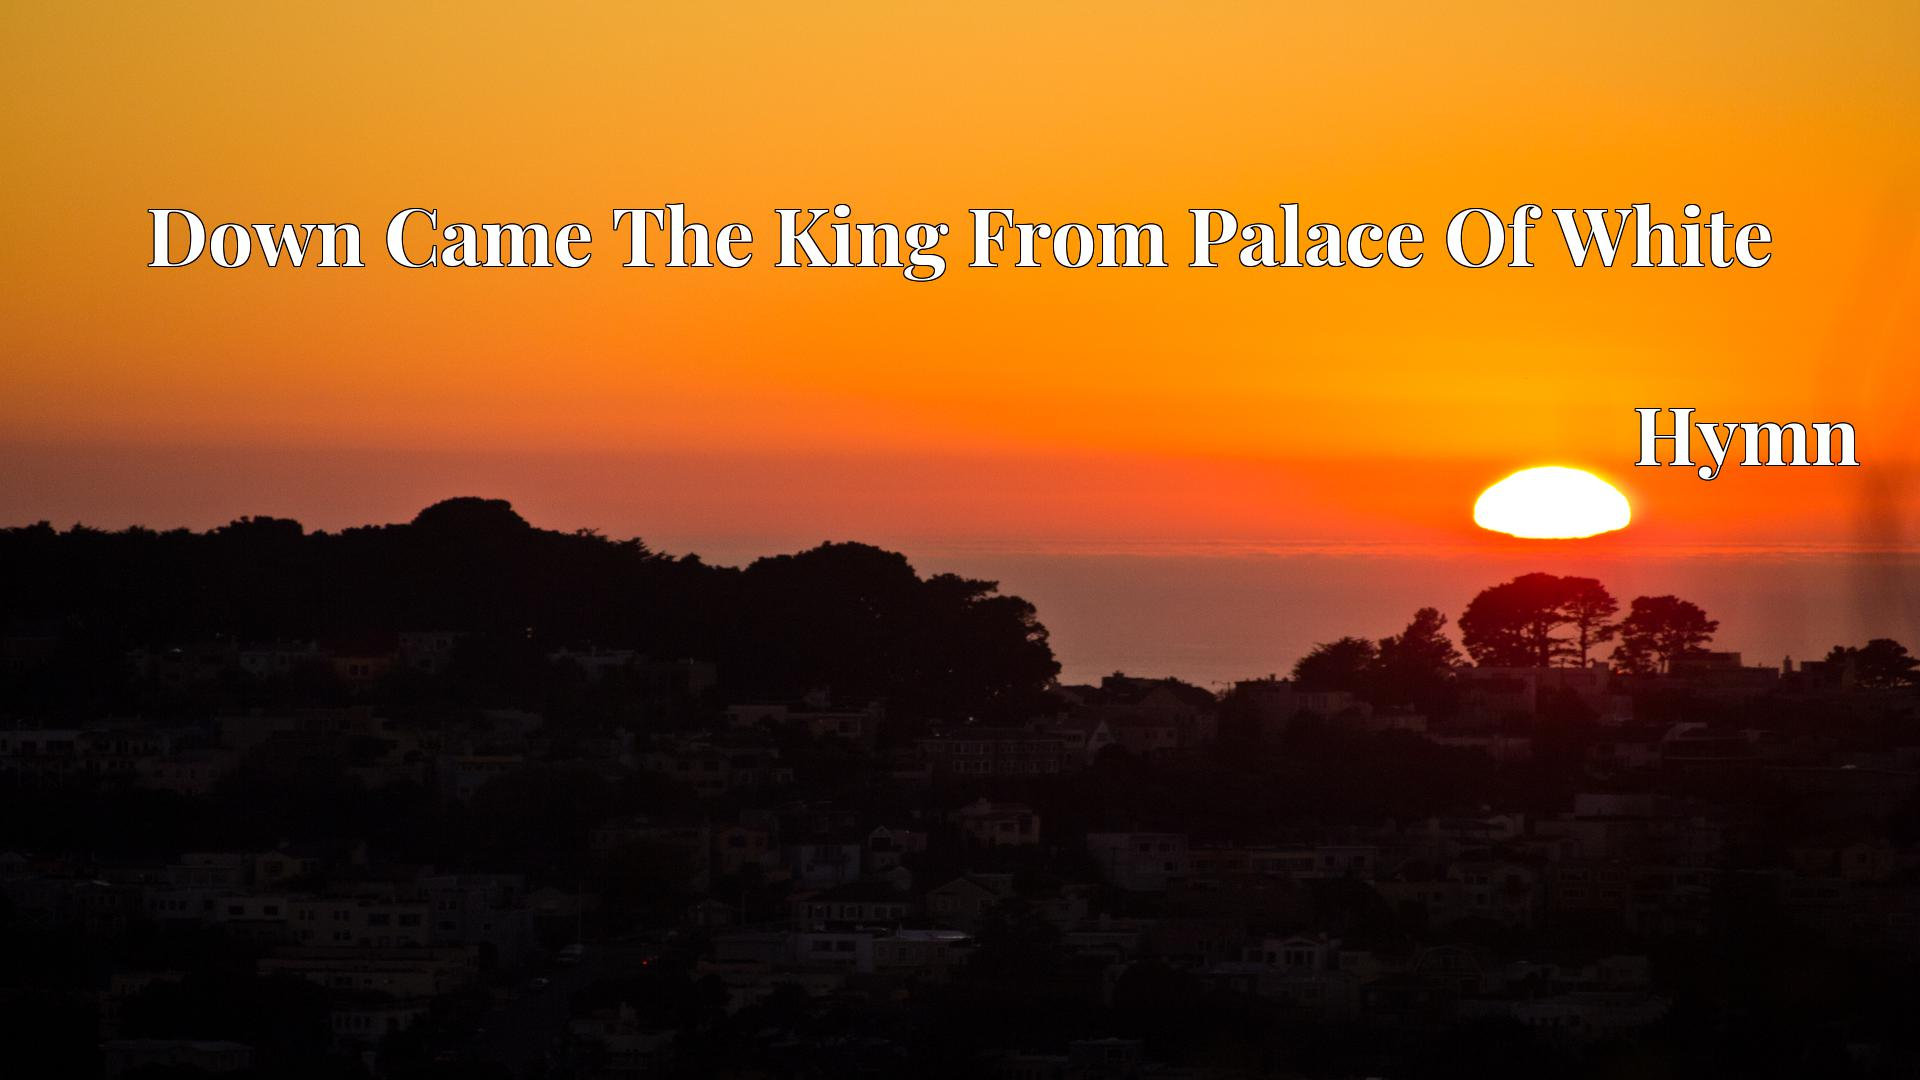 Down Came The King From Palace Of White - Hymn